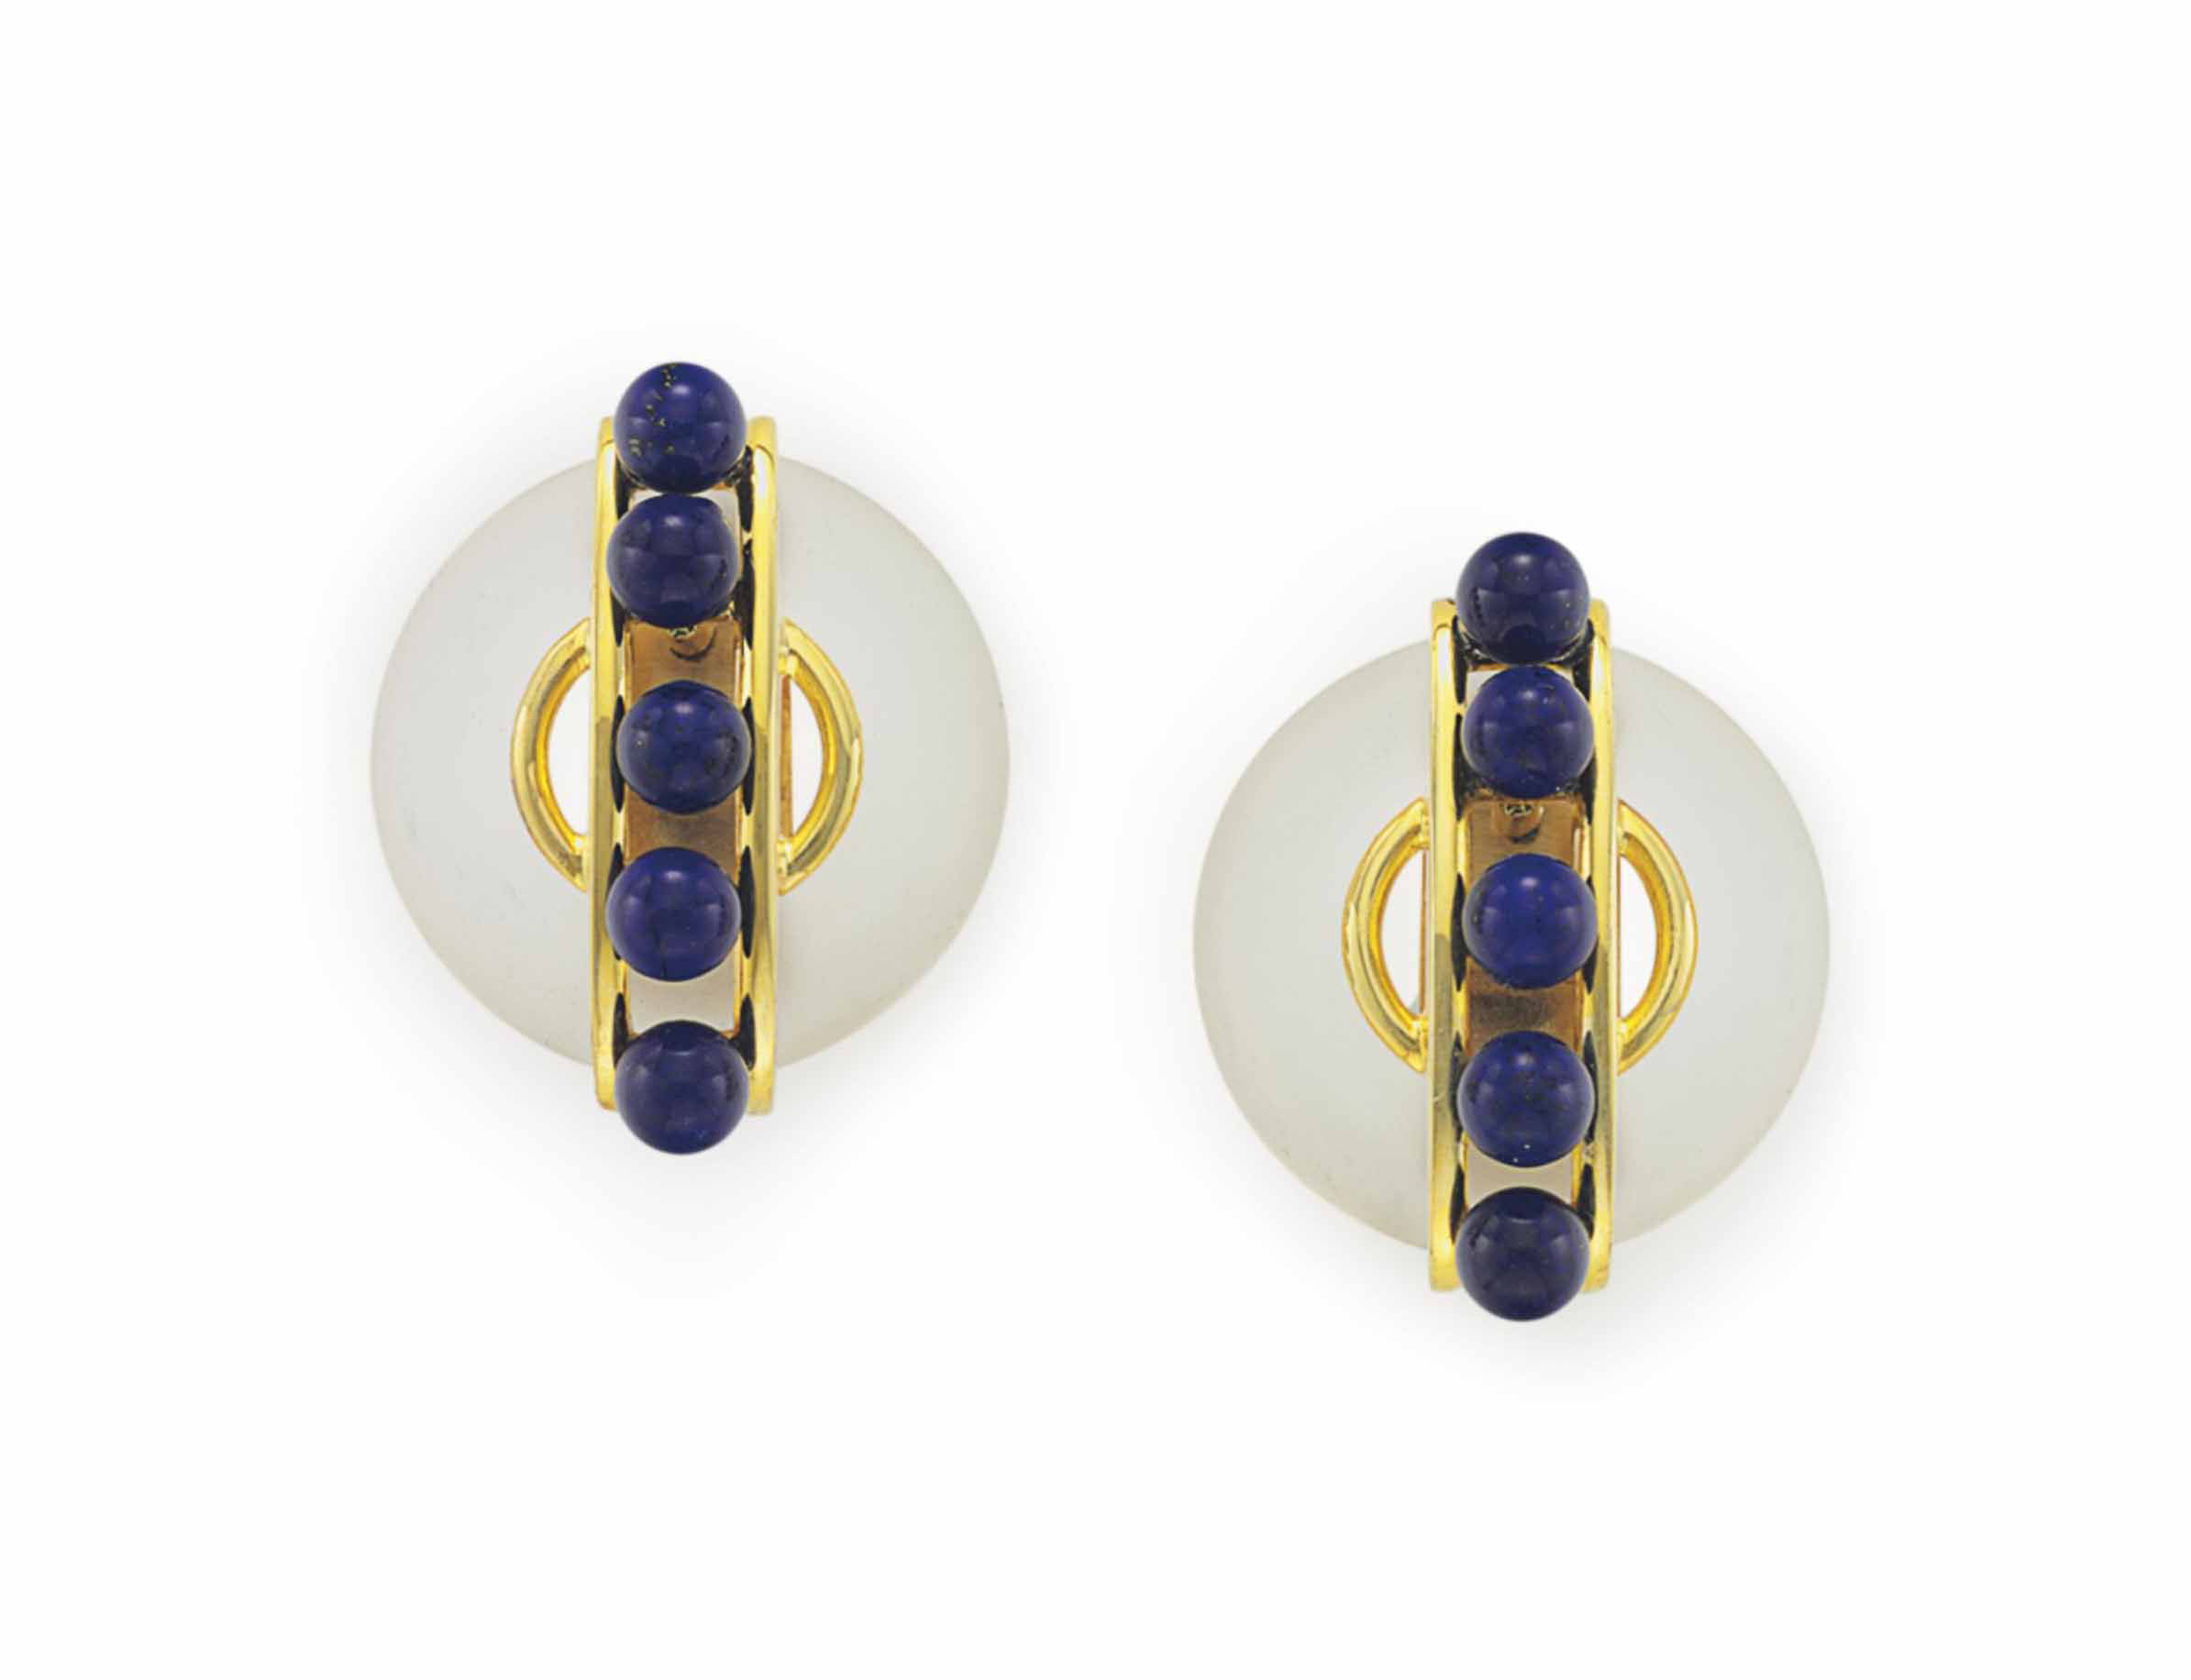 A PAIR OF FROSTED ROCK CRYSTAL, LAPIS LAZULI AND GOLD EAR CLIPS, BY ALDO CIPULLO, CARTIER